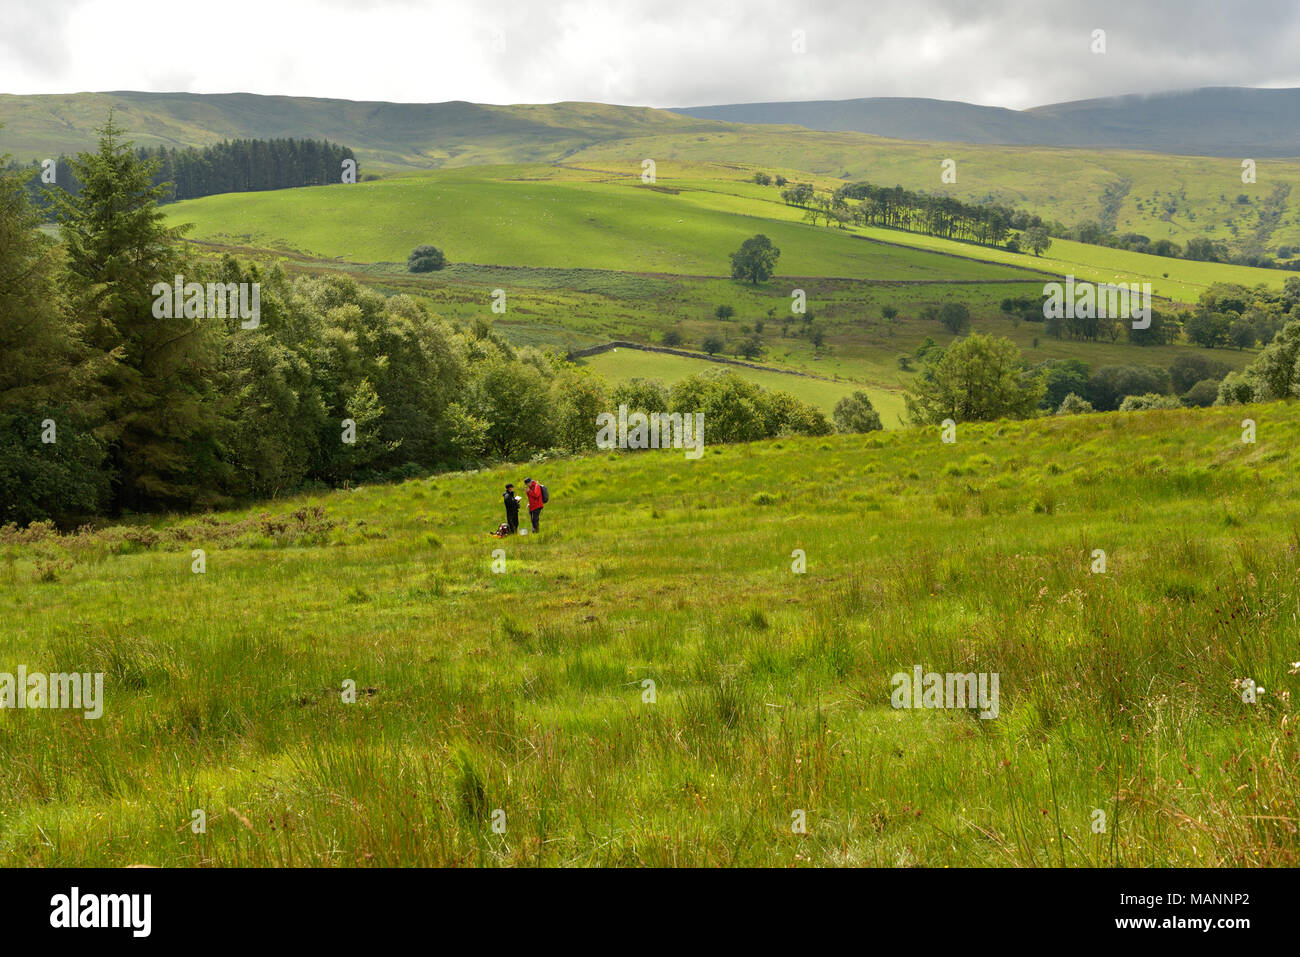 View from a Wet Meadow near Cnewr with two people - Stock Image